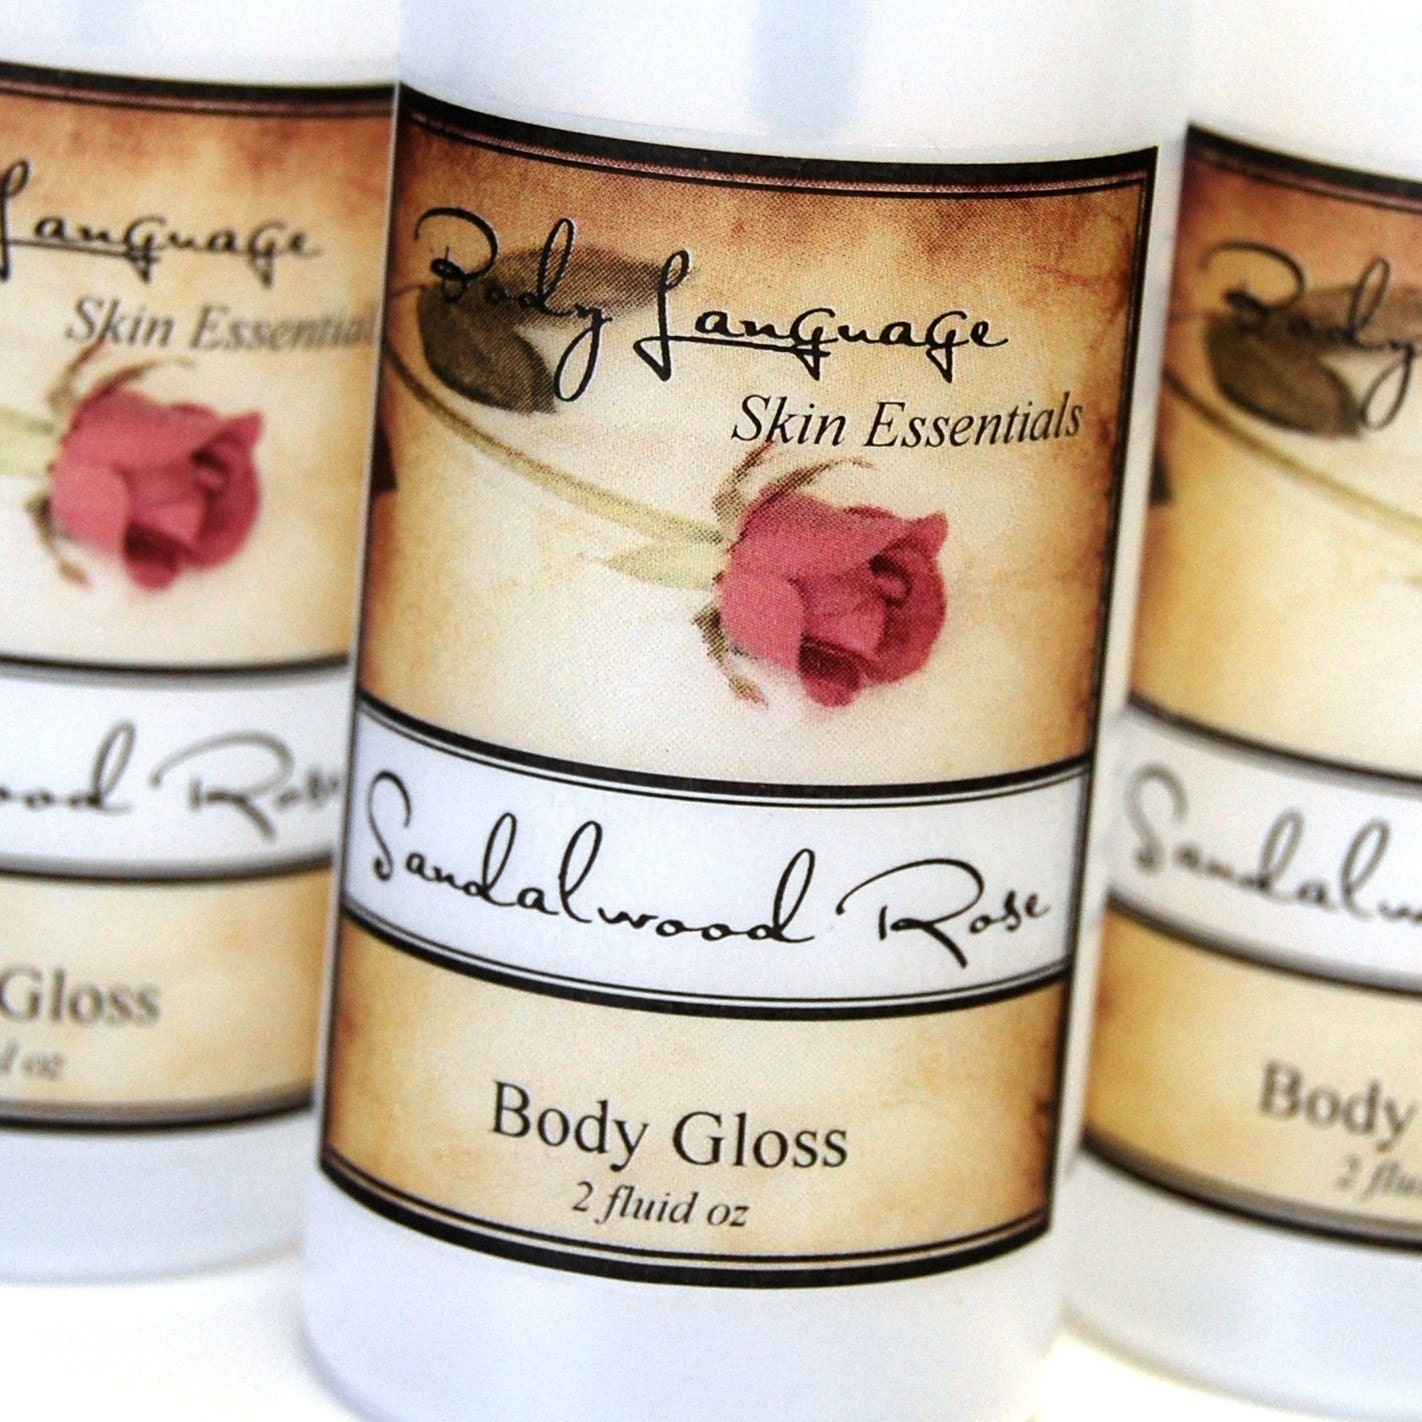 Sandalwood Rose Body Gloss - Sensual Scented After Bath Body Spray